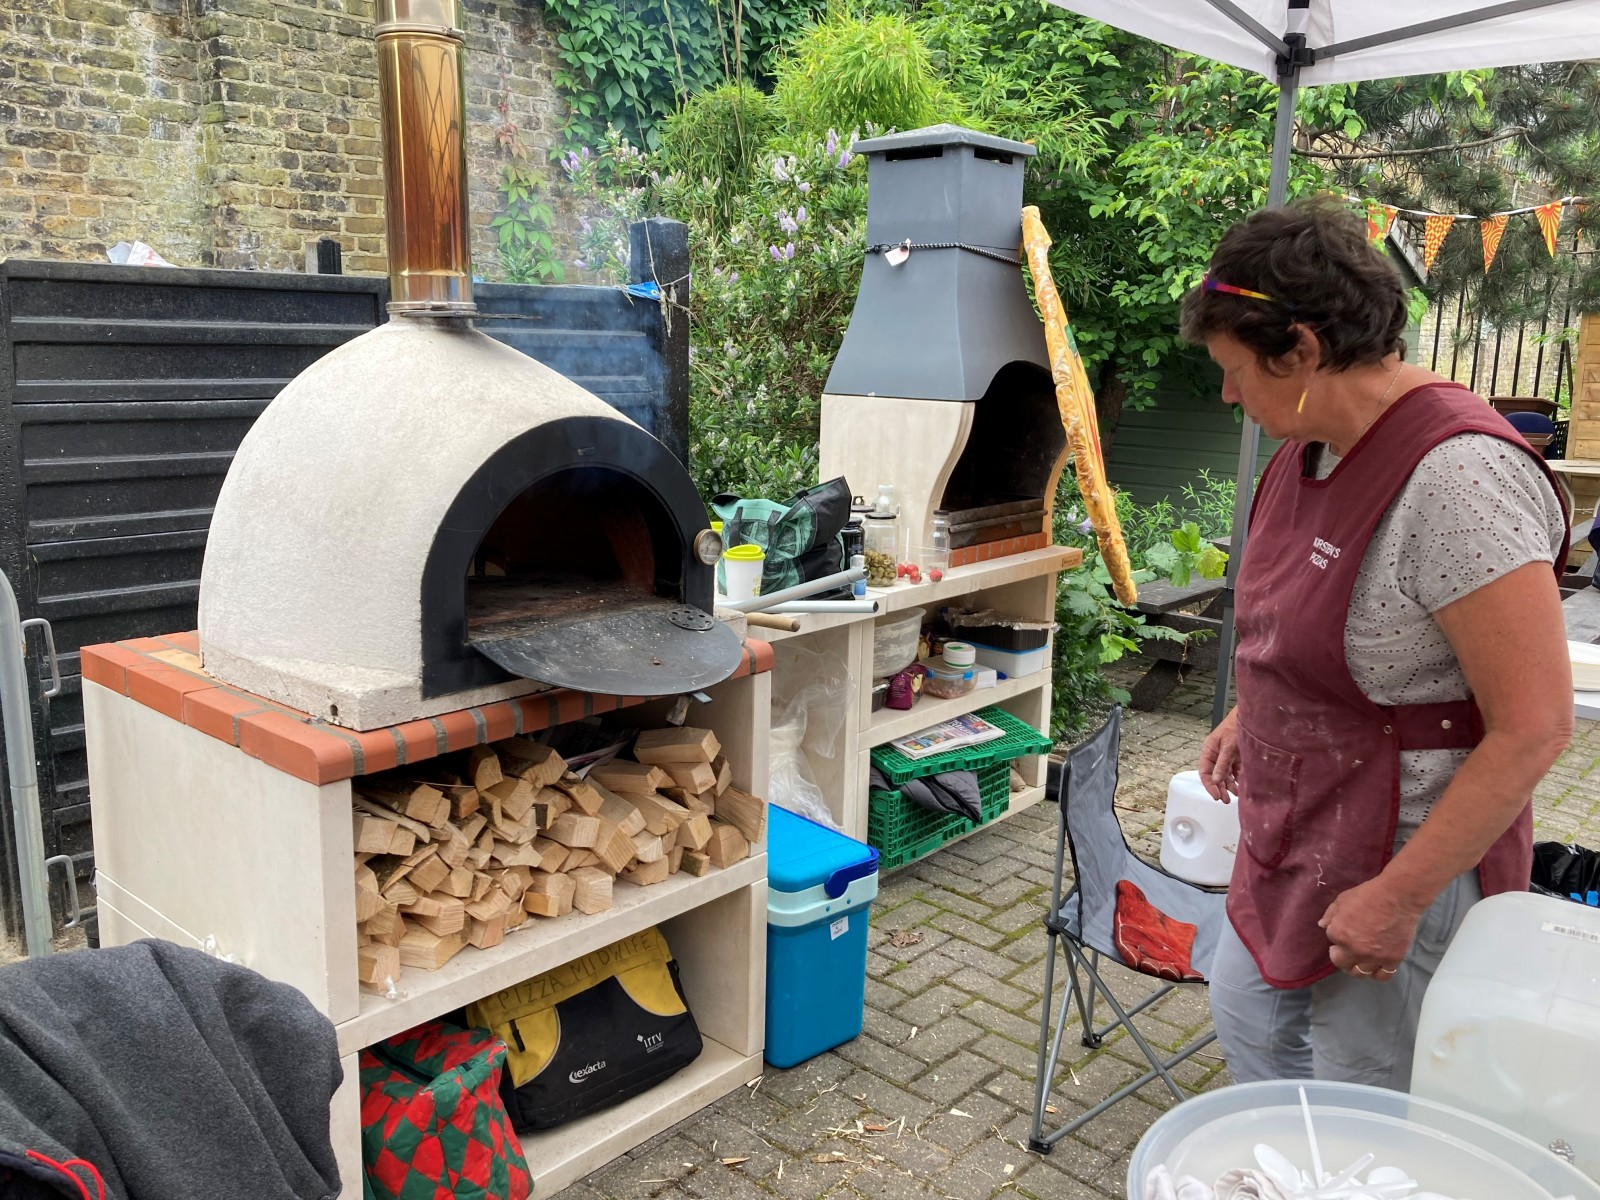 Happy Streets Festival: Pizza making ovens